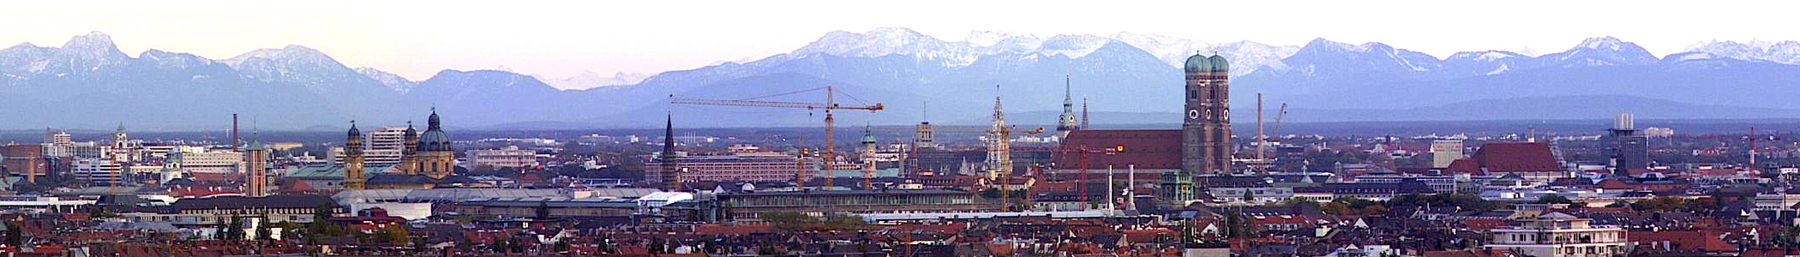 A panorama of Munich with the Frauenkirche against the backdrop of the Alps